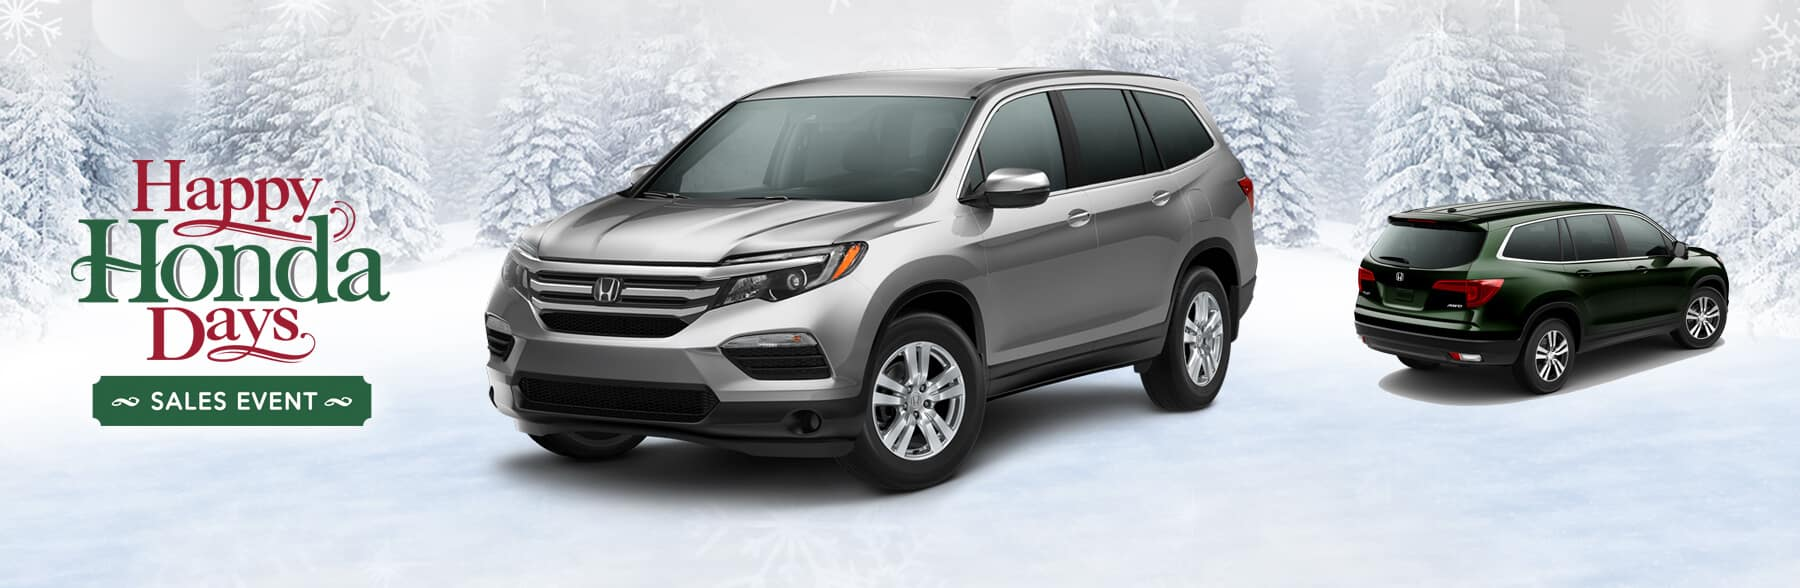 Happy Honda Days Pilot Banner